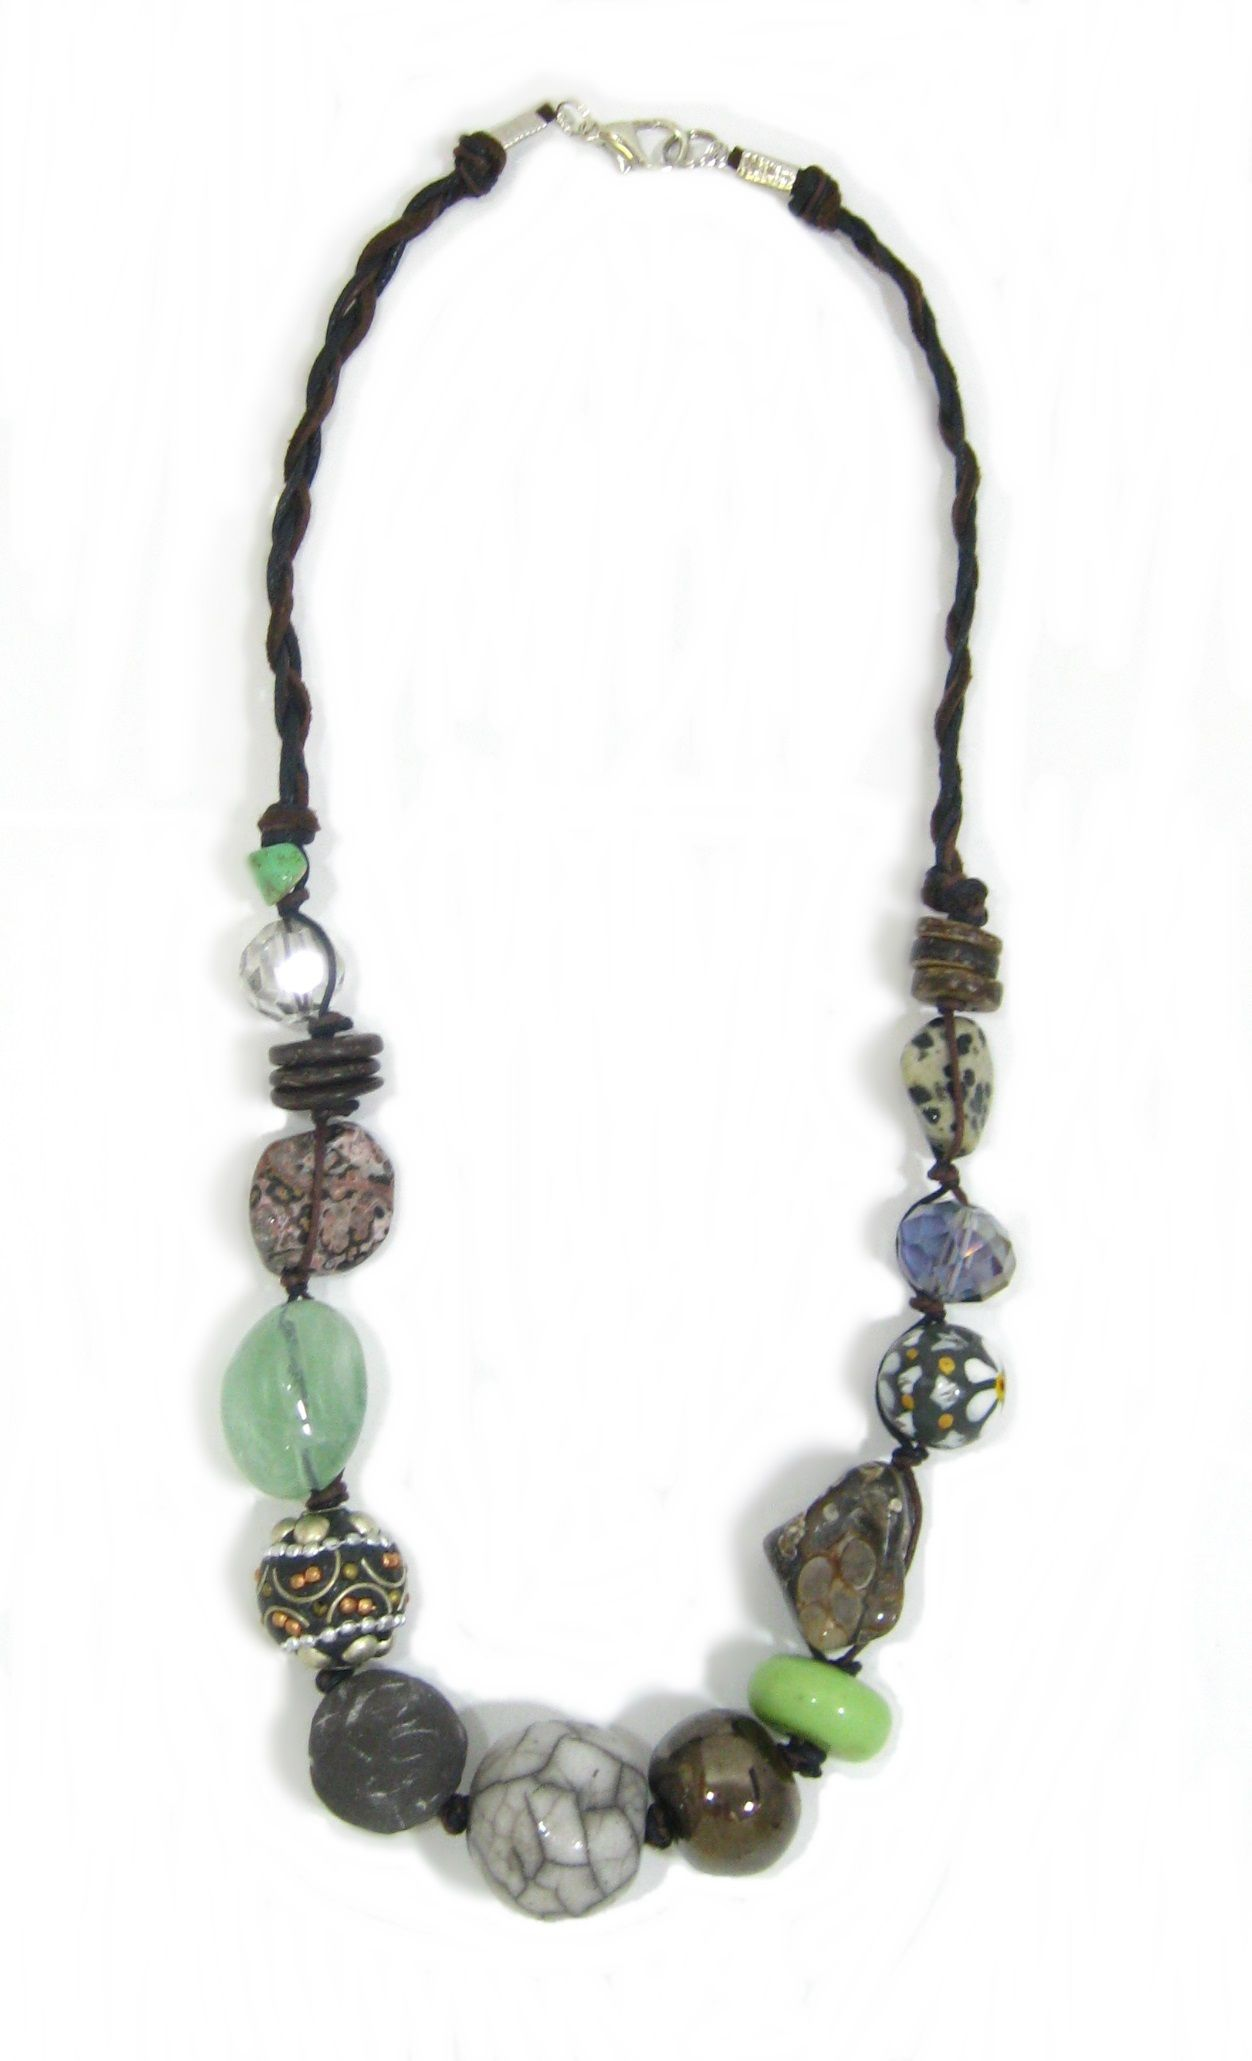 Green and Black Ceramic and Stone with cord. Semi-precious and handmade ceramic beads. www.marzipan.co.za